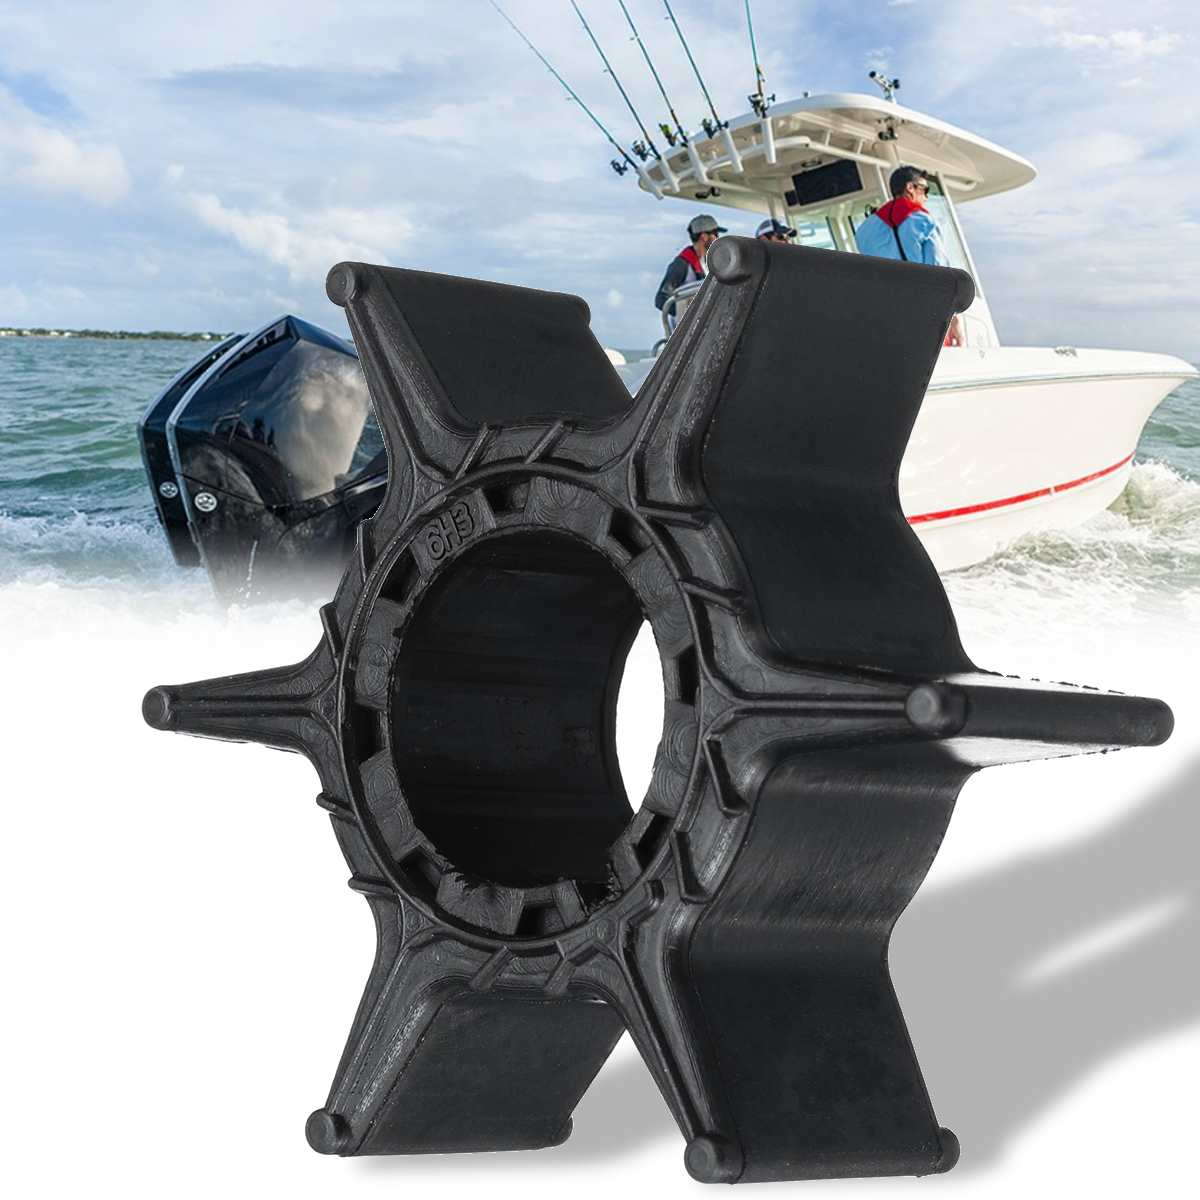 US $3 23 26% OFF|6H3 44352 00 Replacement Water Pump Impeller for Yamaha 40  60HP Outboard Motor Diameter 52mm Accessories 6 Blades Black Rubber-in